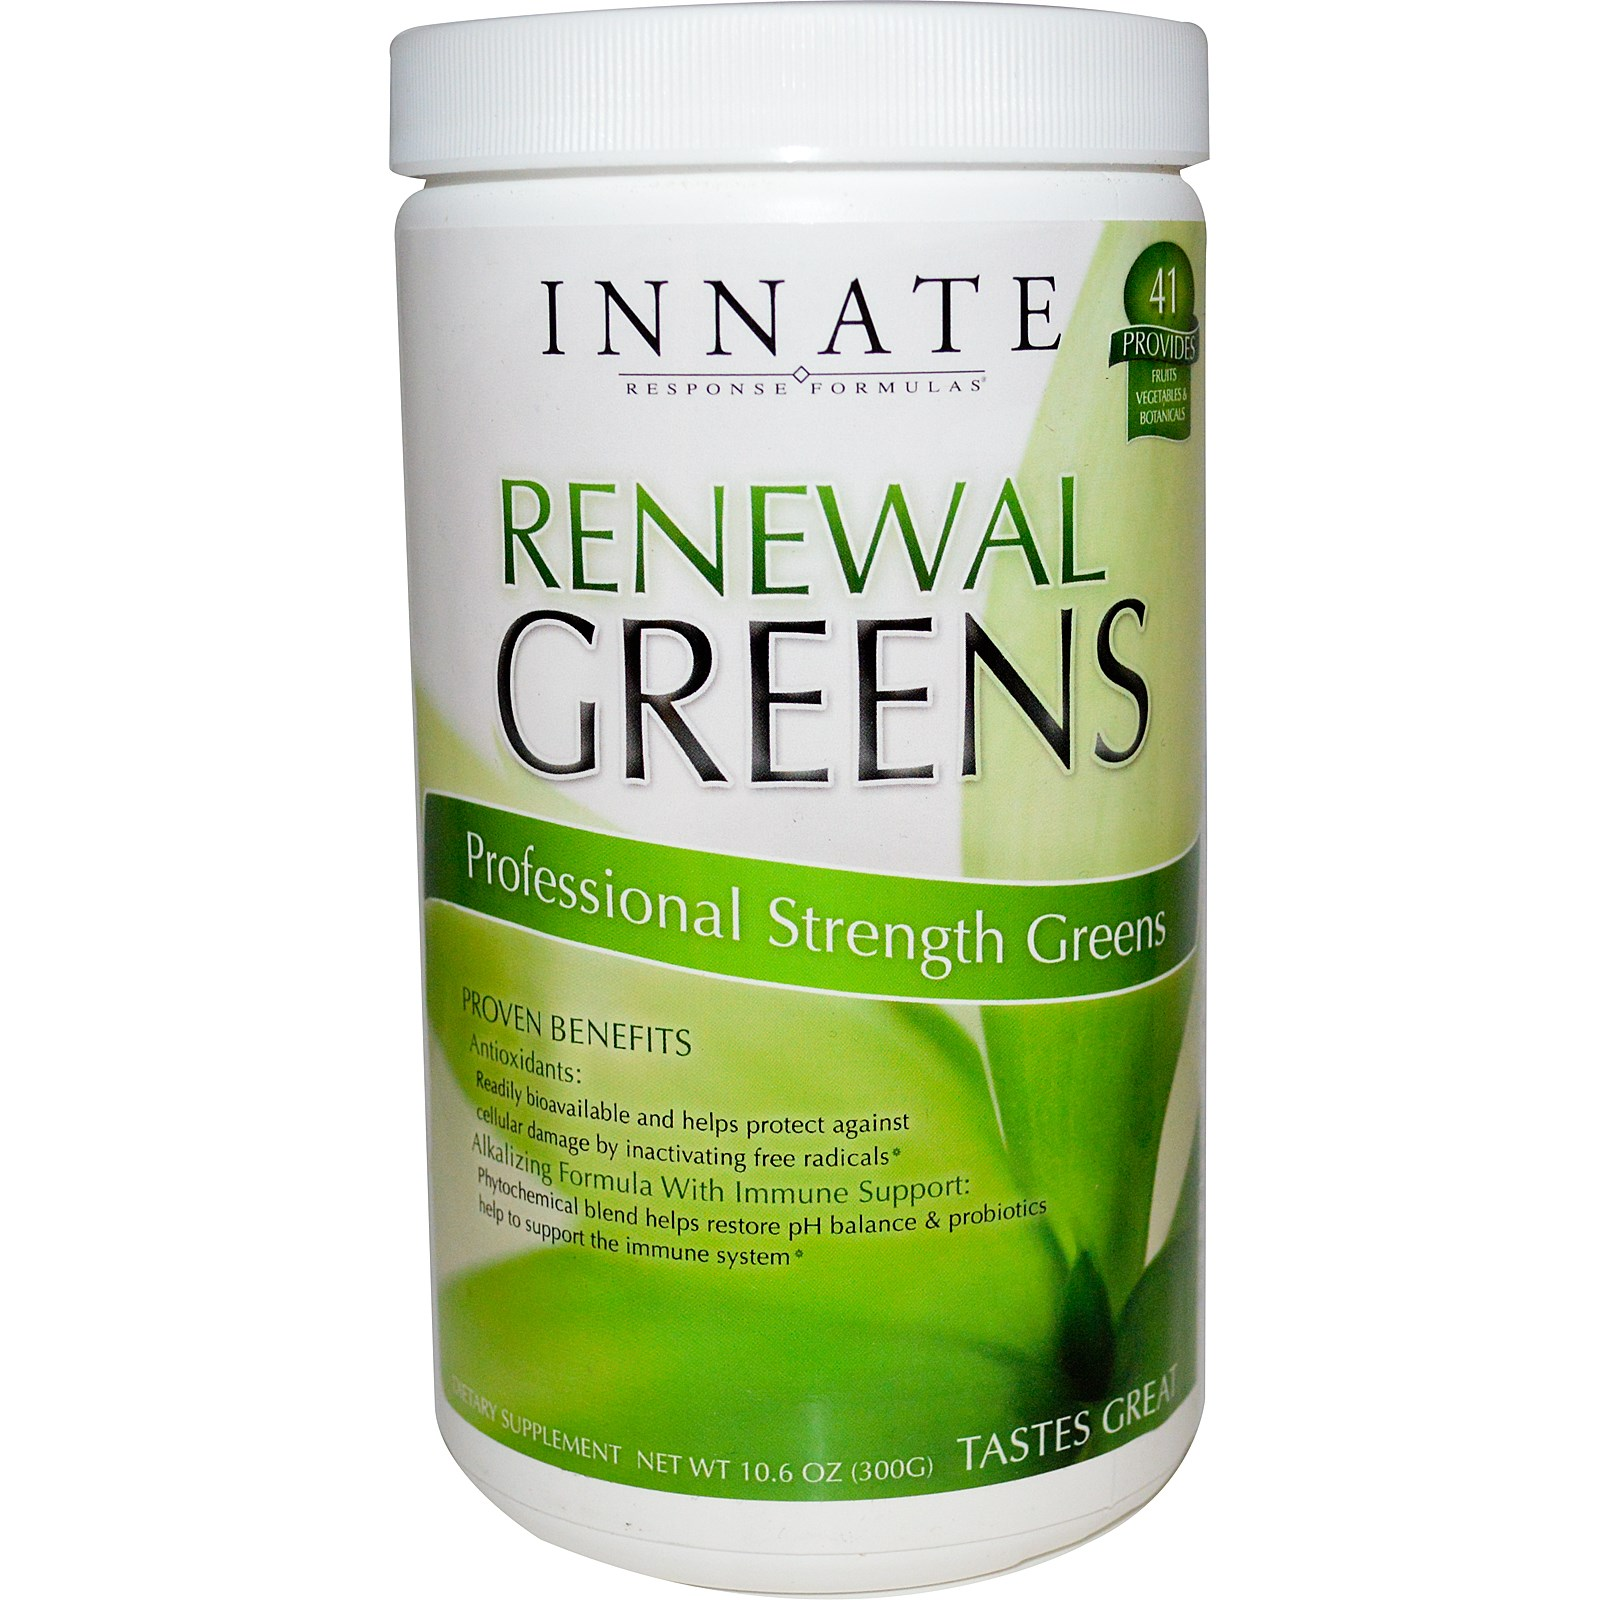 INNATE RESPONSE RENEWAL GREENS: